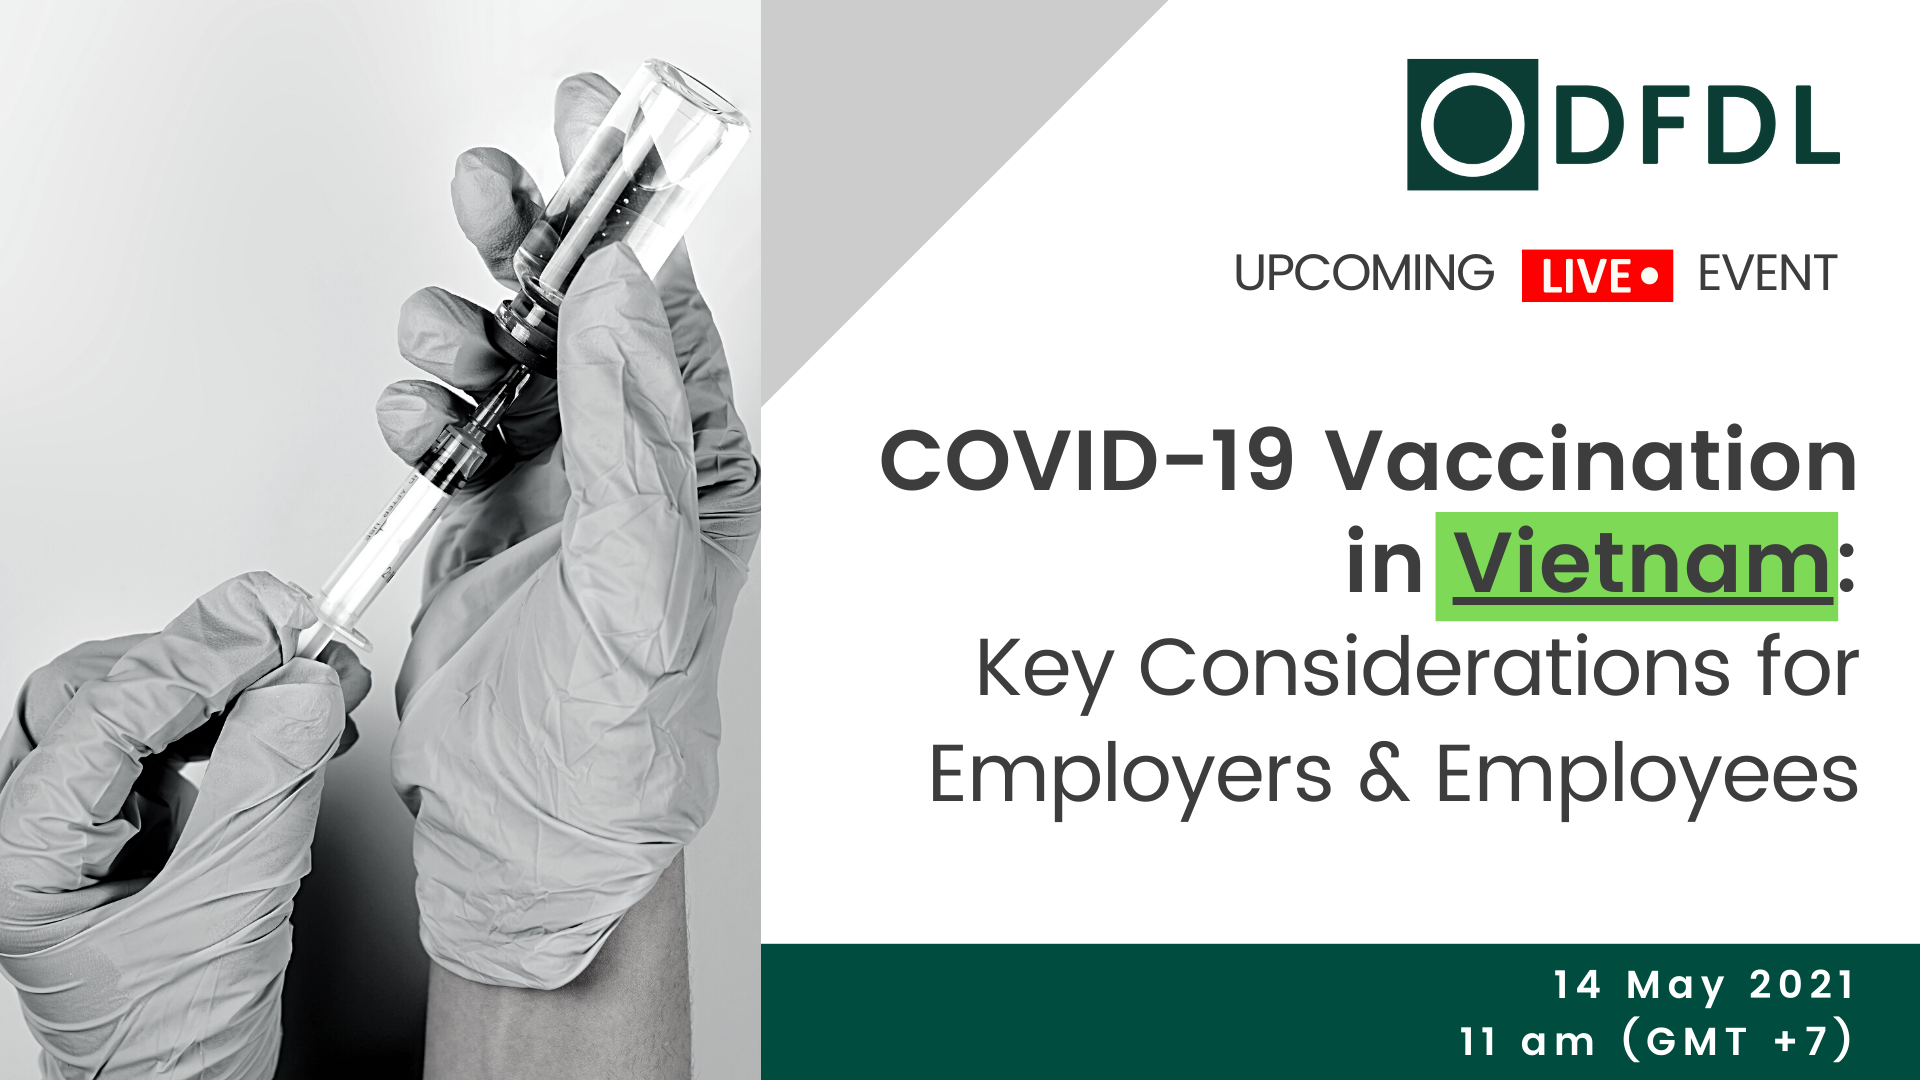 COVID-19 Vaccination in Vietnam: Key Considerations for Employers & Employees